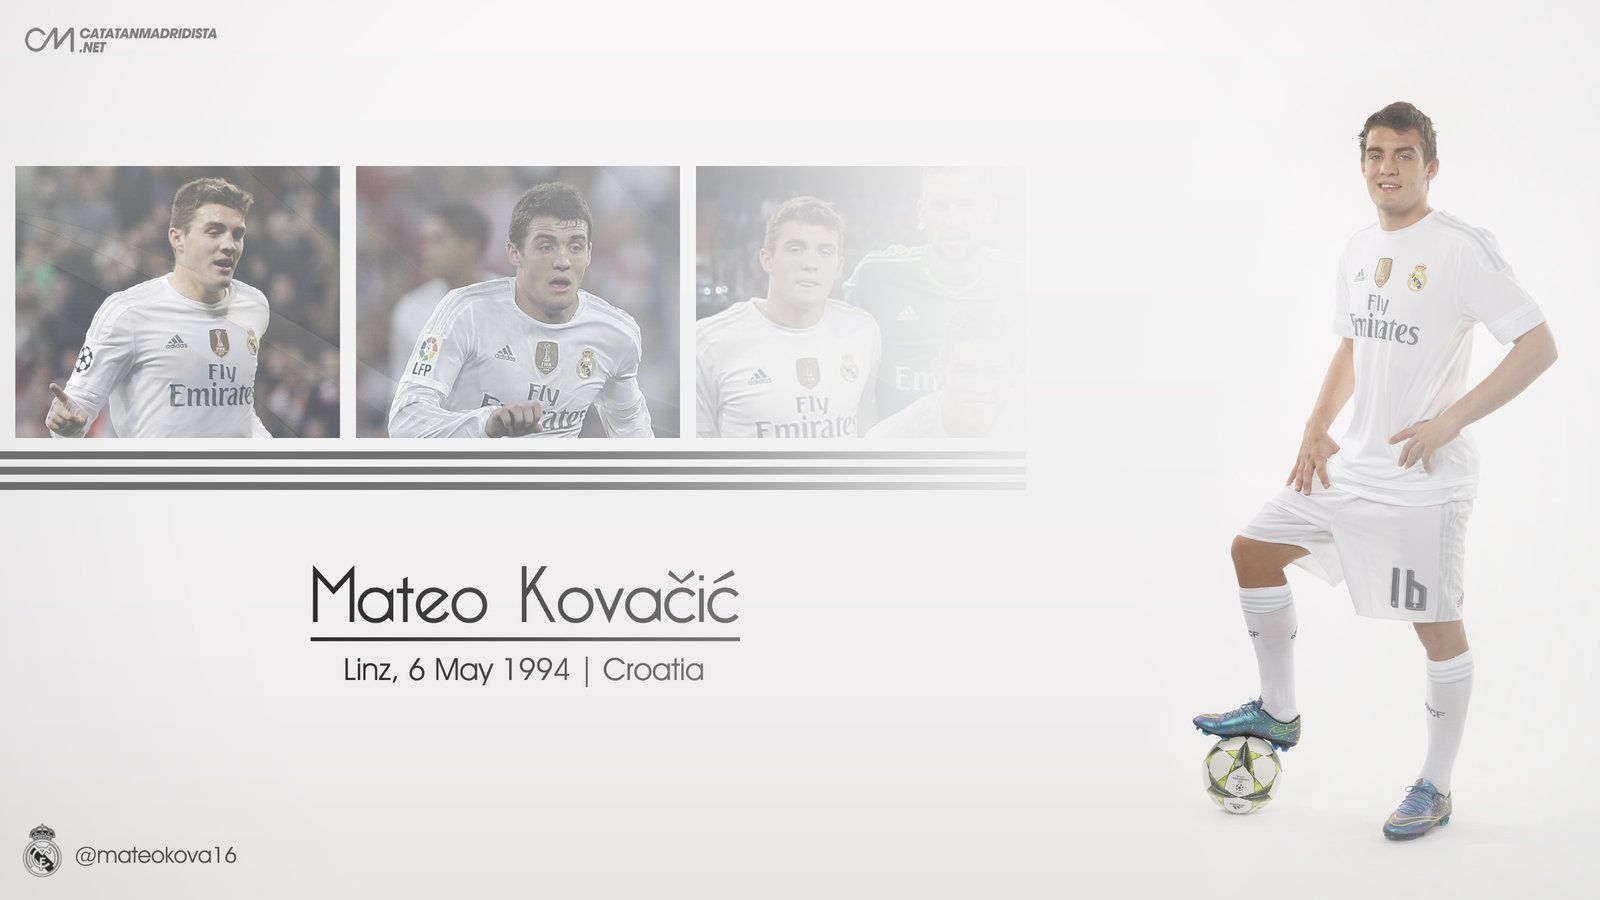 Mateo Kovacic 2016 - Real Madrid by catatanmadridista on DeviantArt